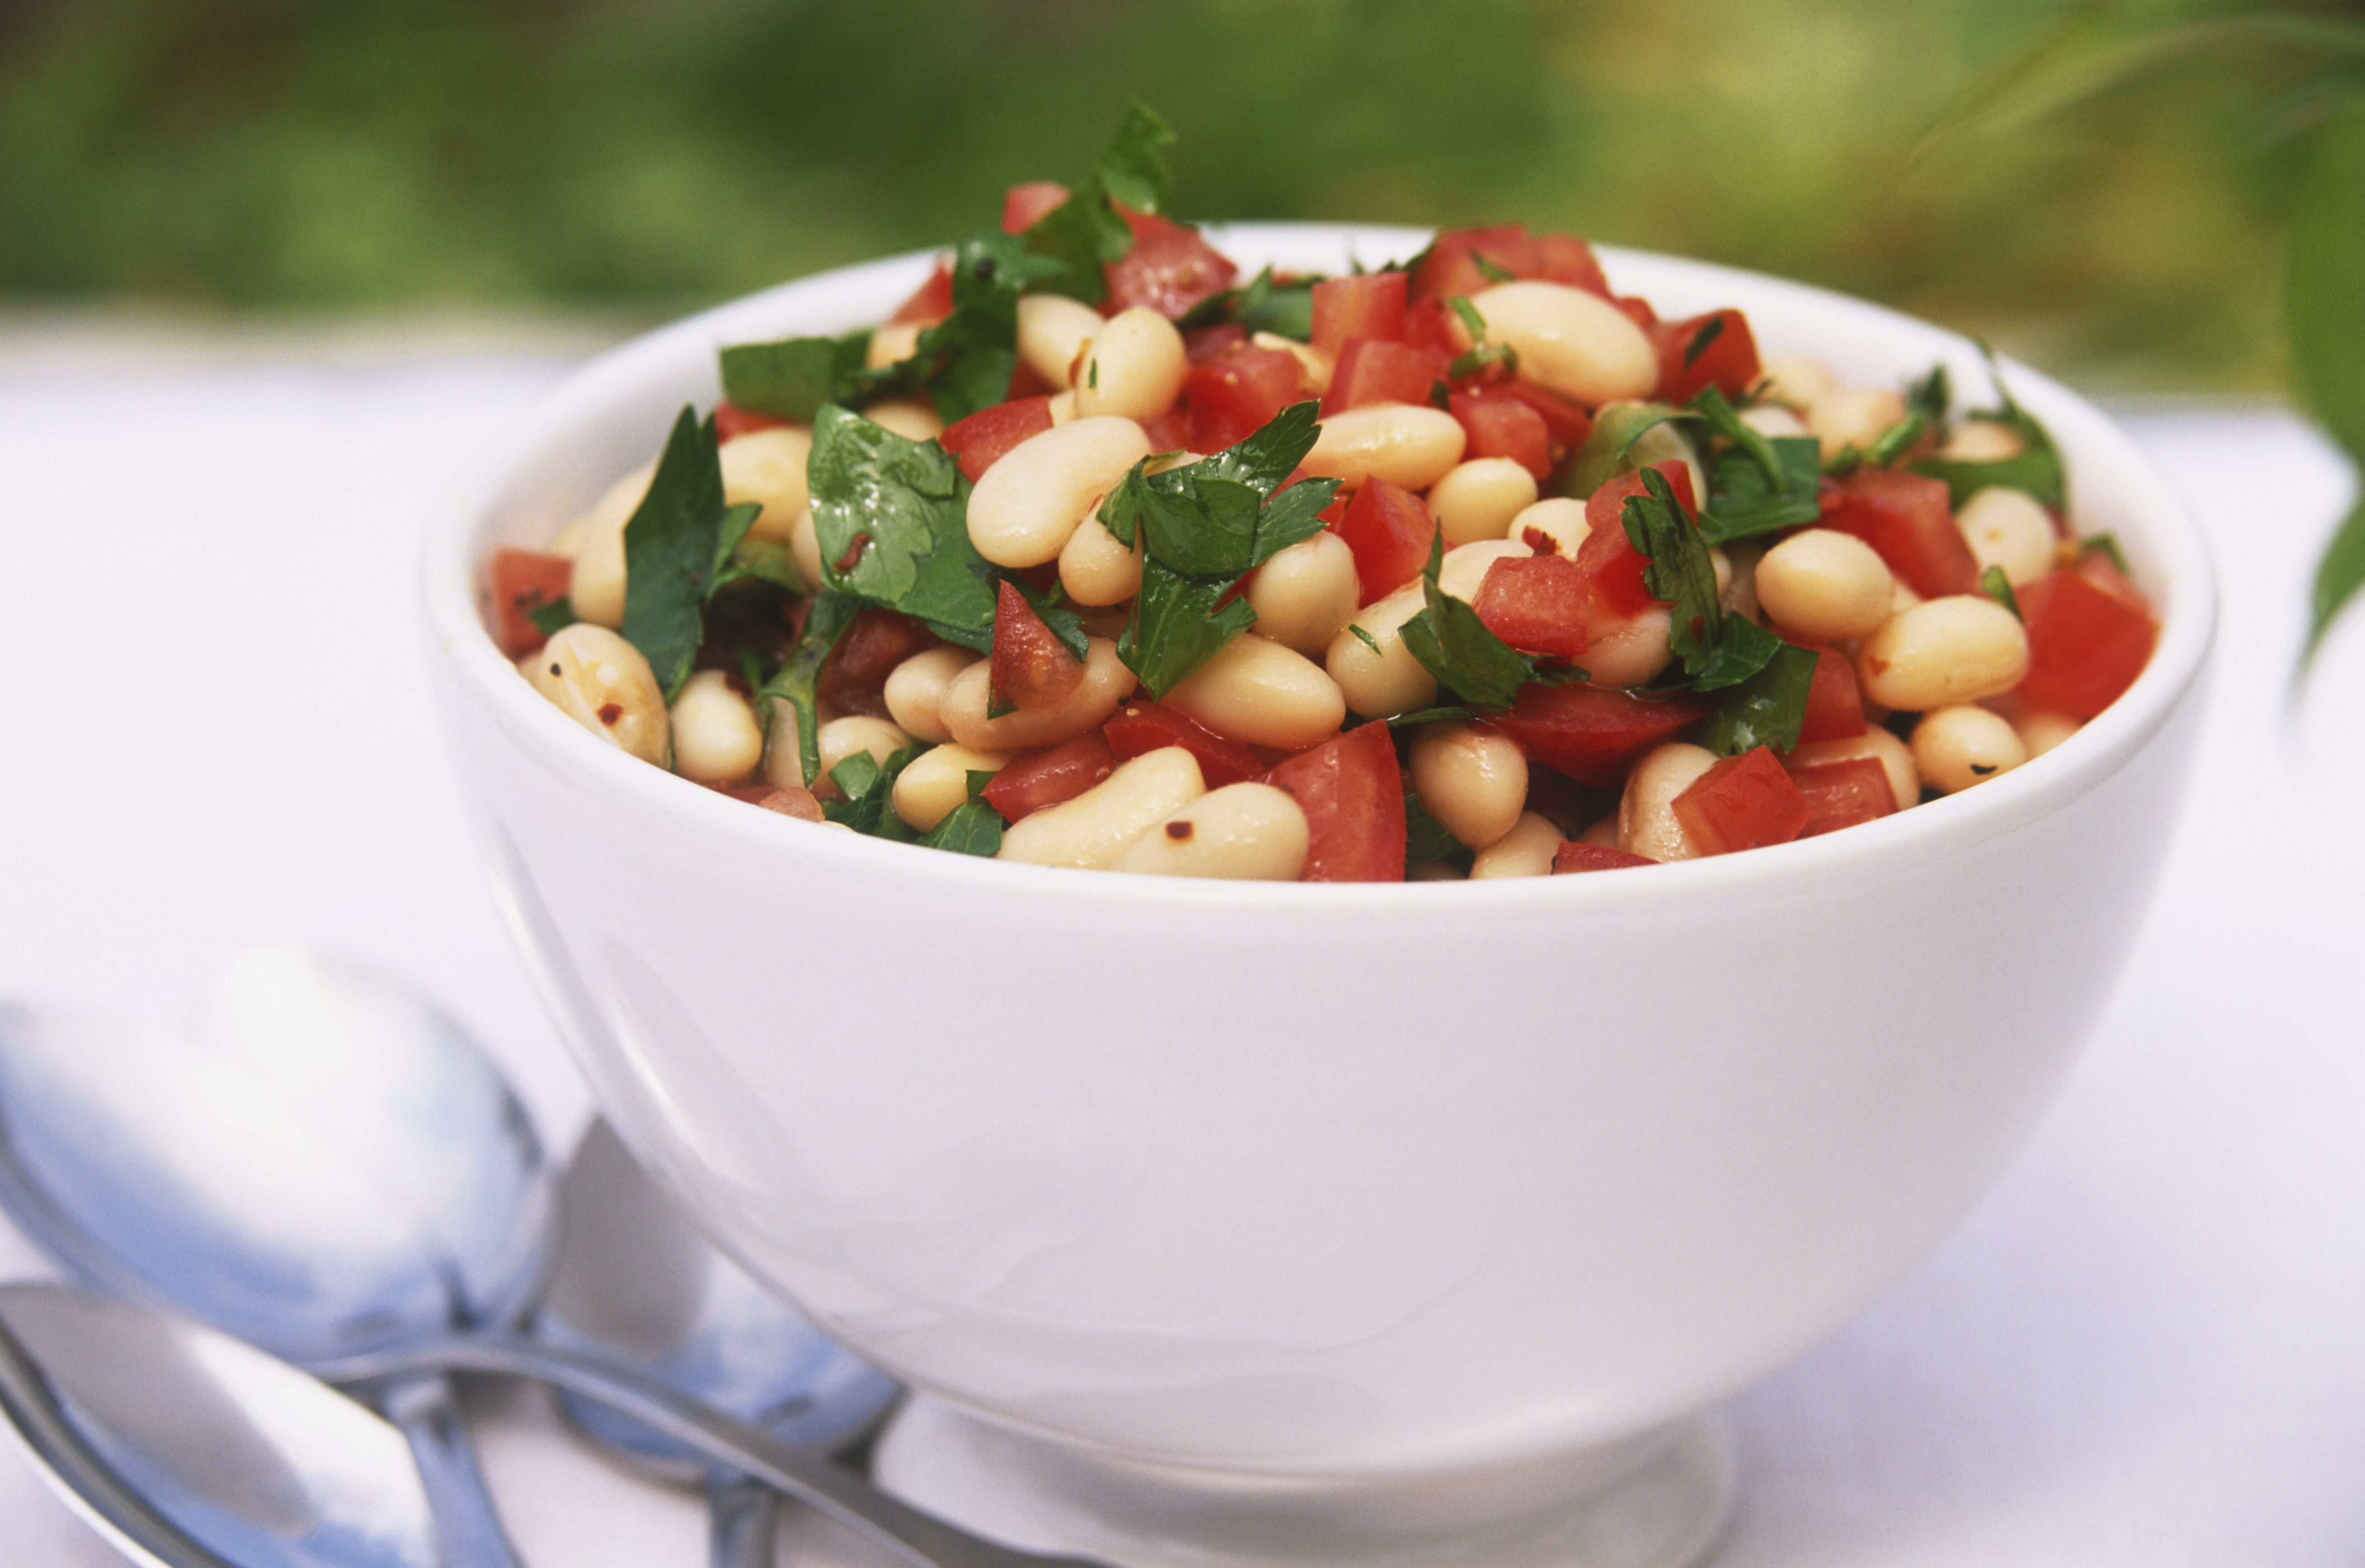 White bowl containing marinated beans and tomato salad, garnished with coarsely chopped parsley